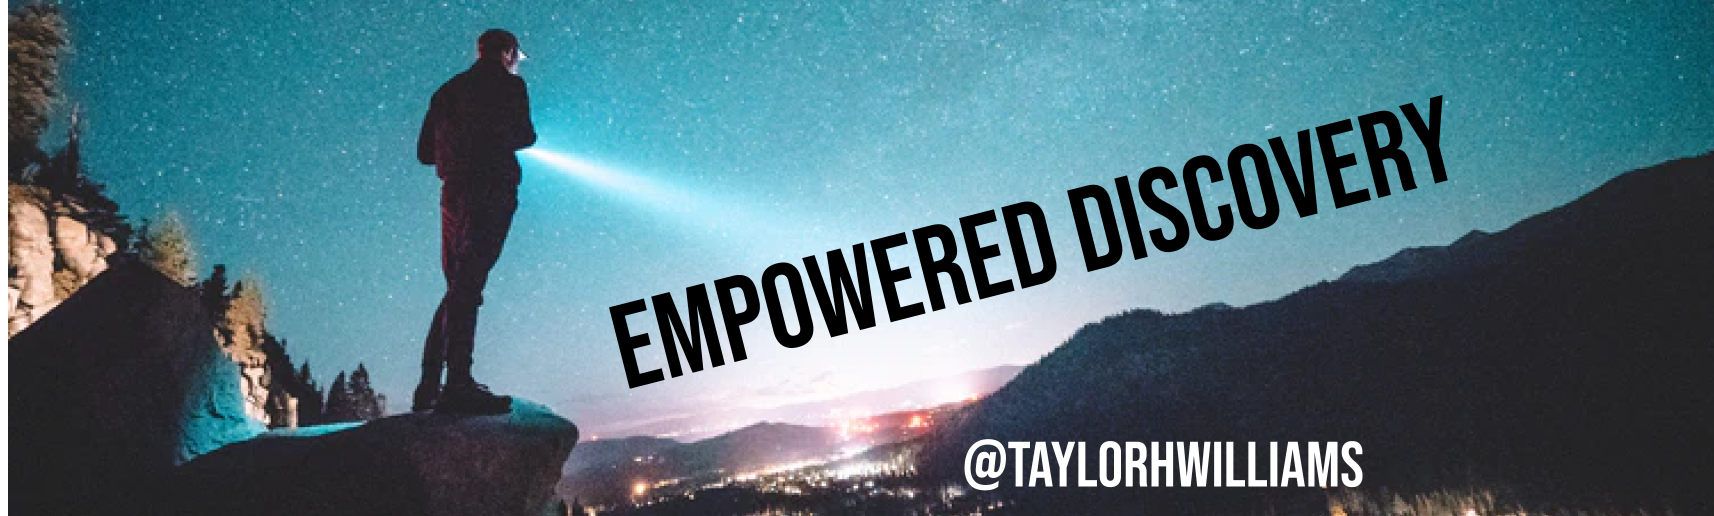 Empowered Discover by @taylorhwilliams